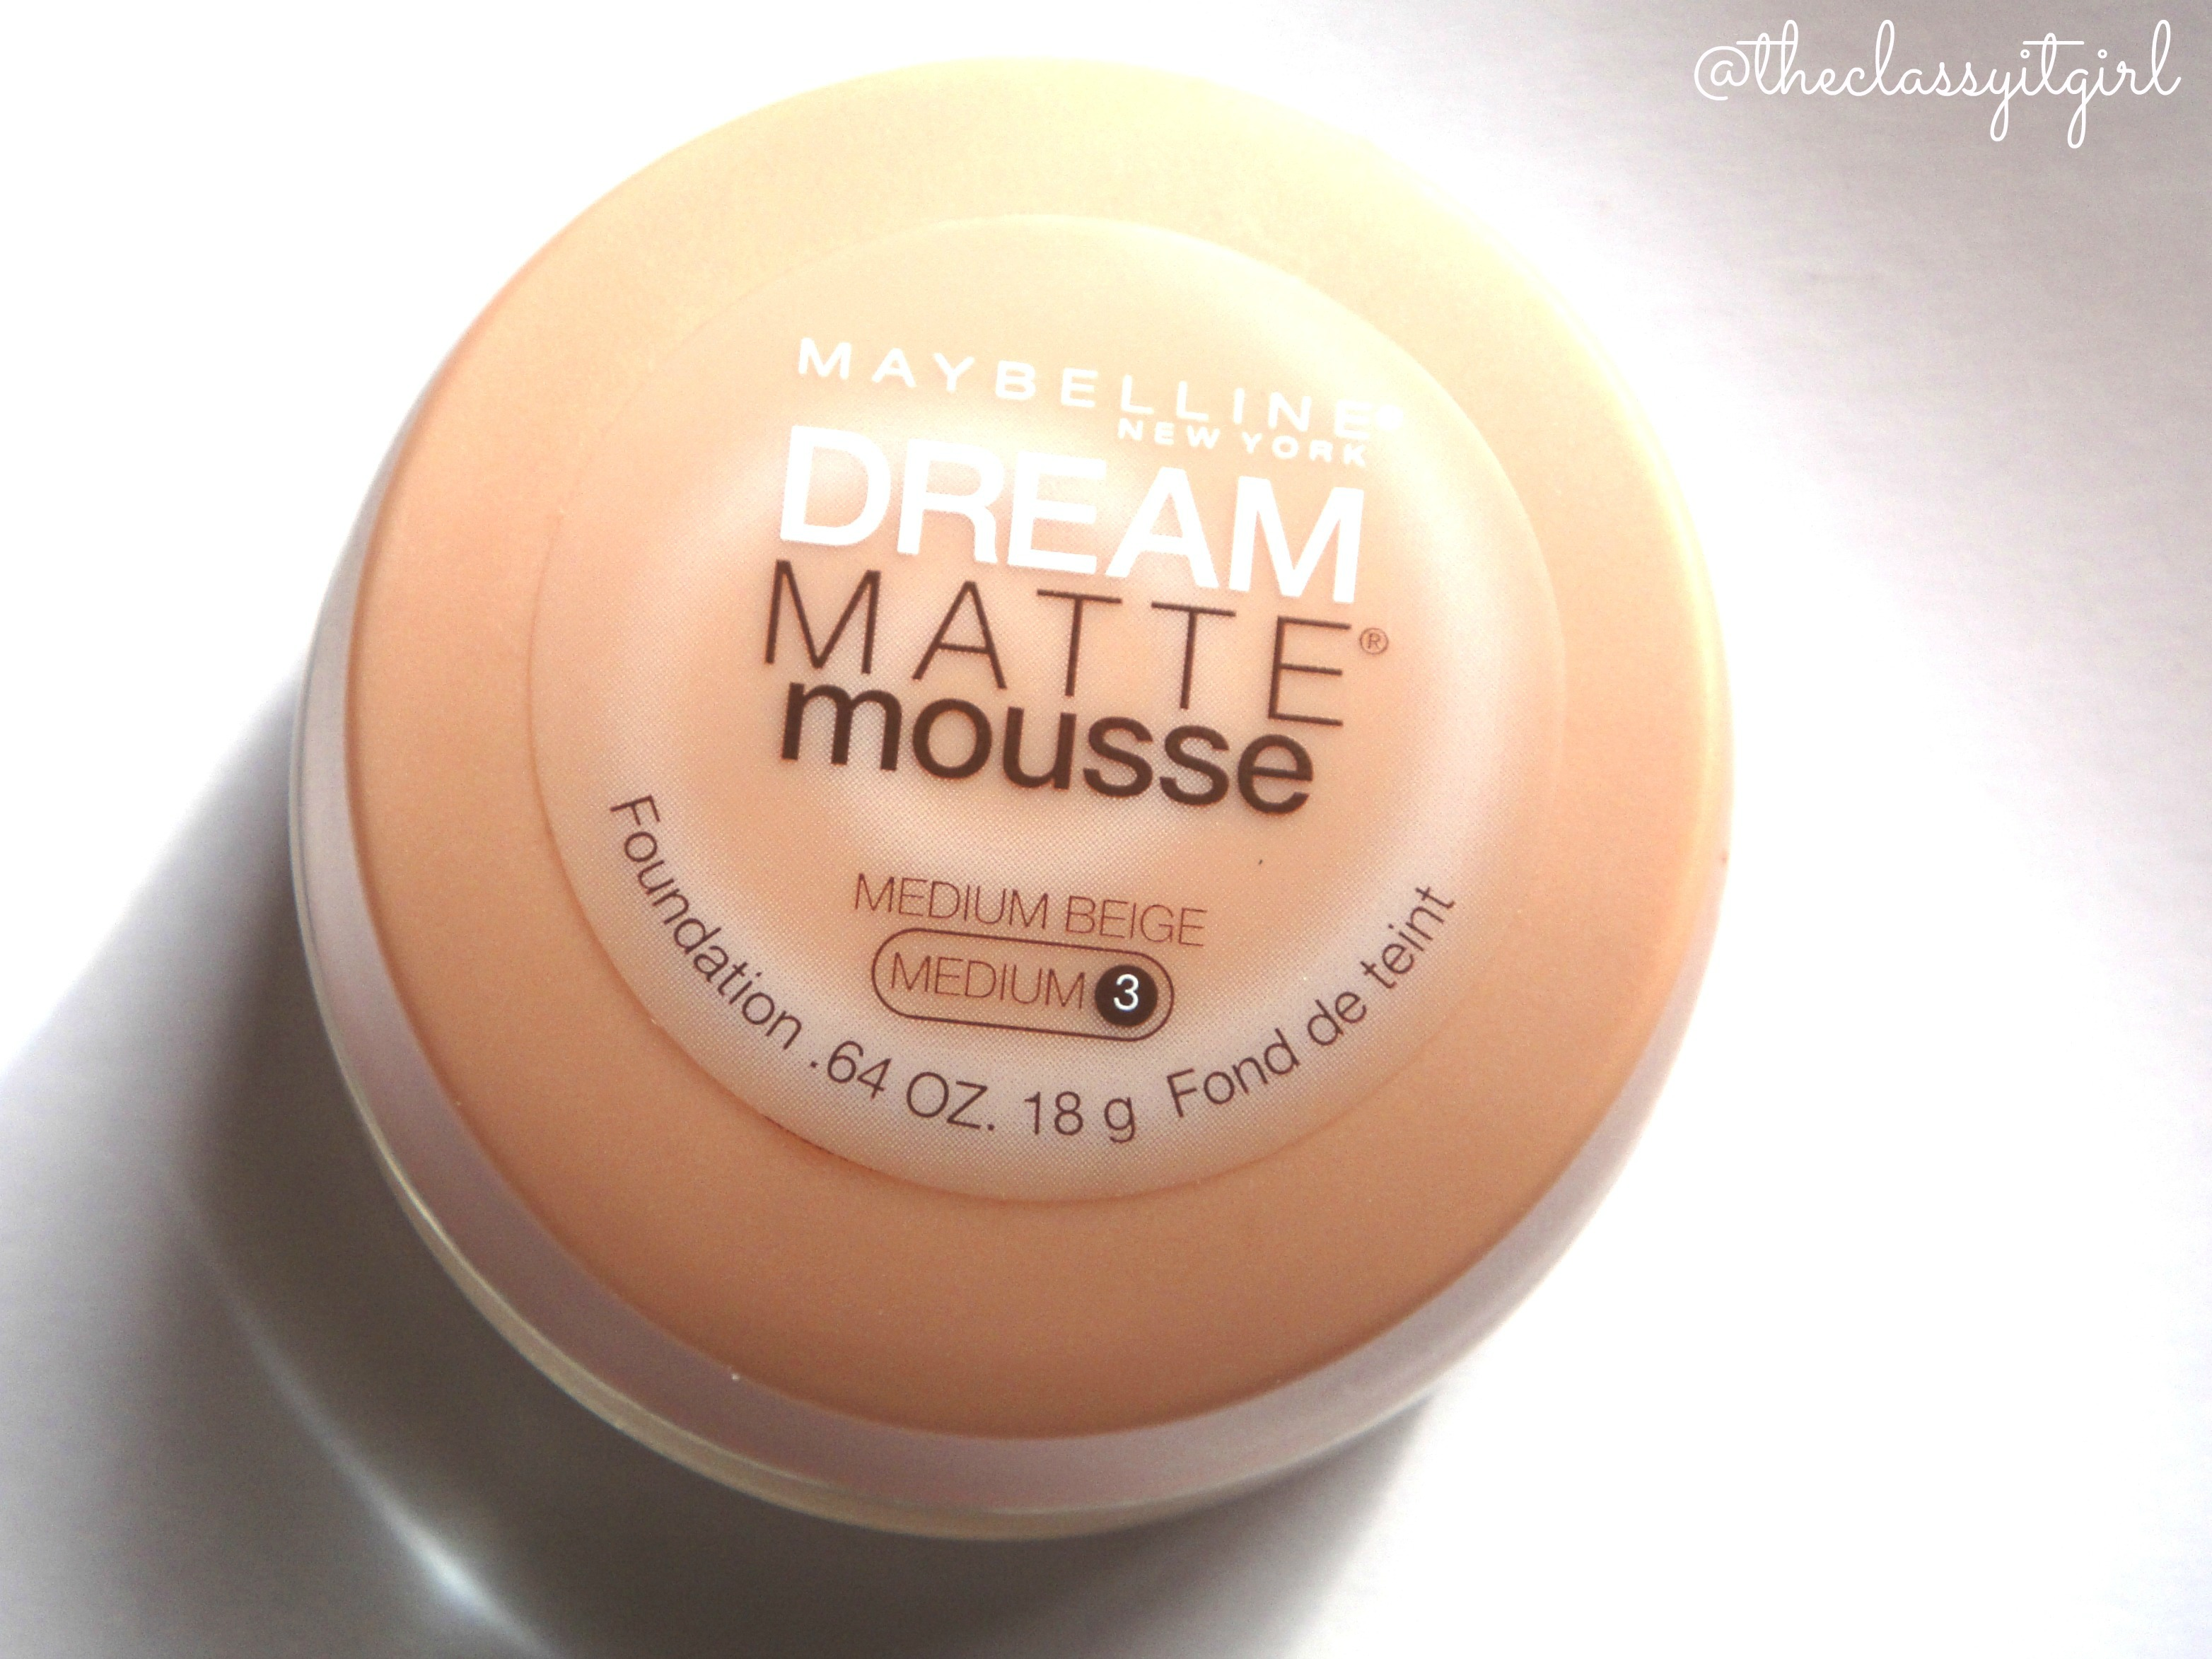 Maybelline Dream Matte Mousse Foundation-Review & Demo! | The ...